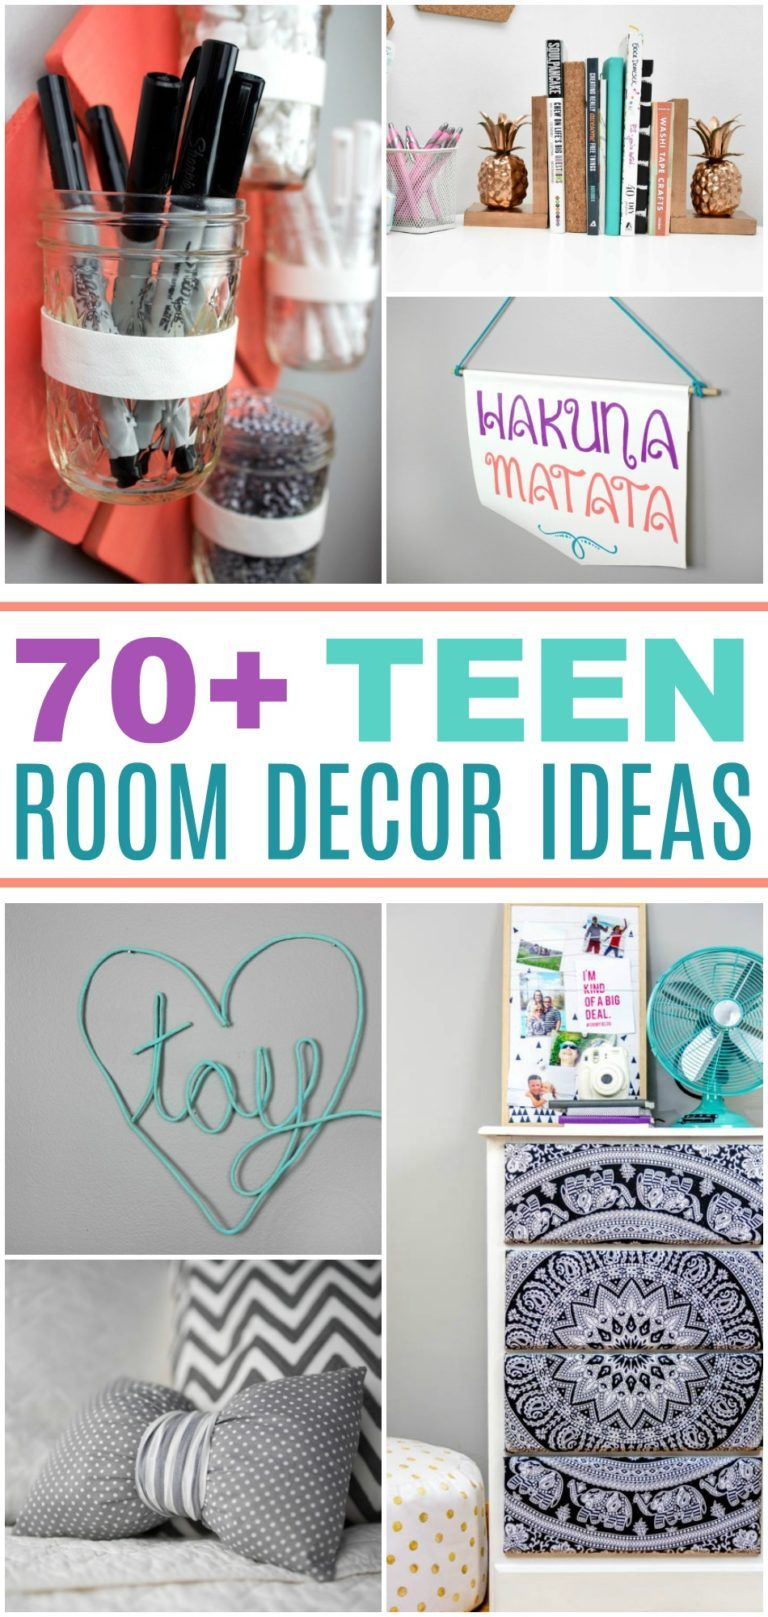 70 Diy Room Decor Ideas For Teens Easy Diy Room Decor Diy Room